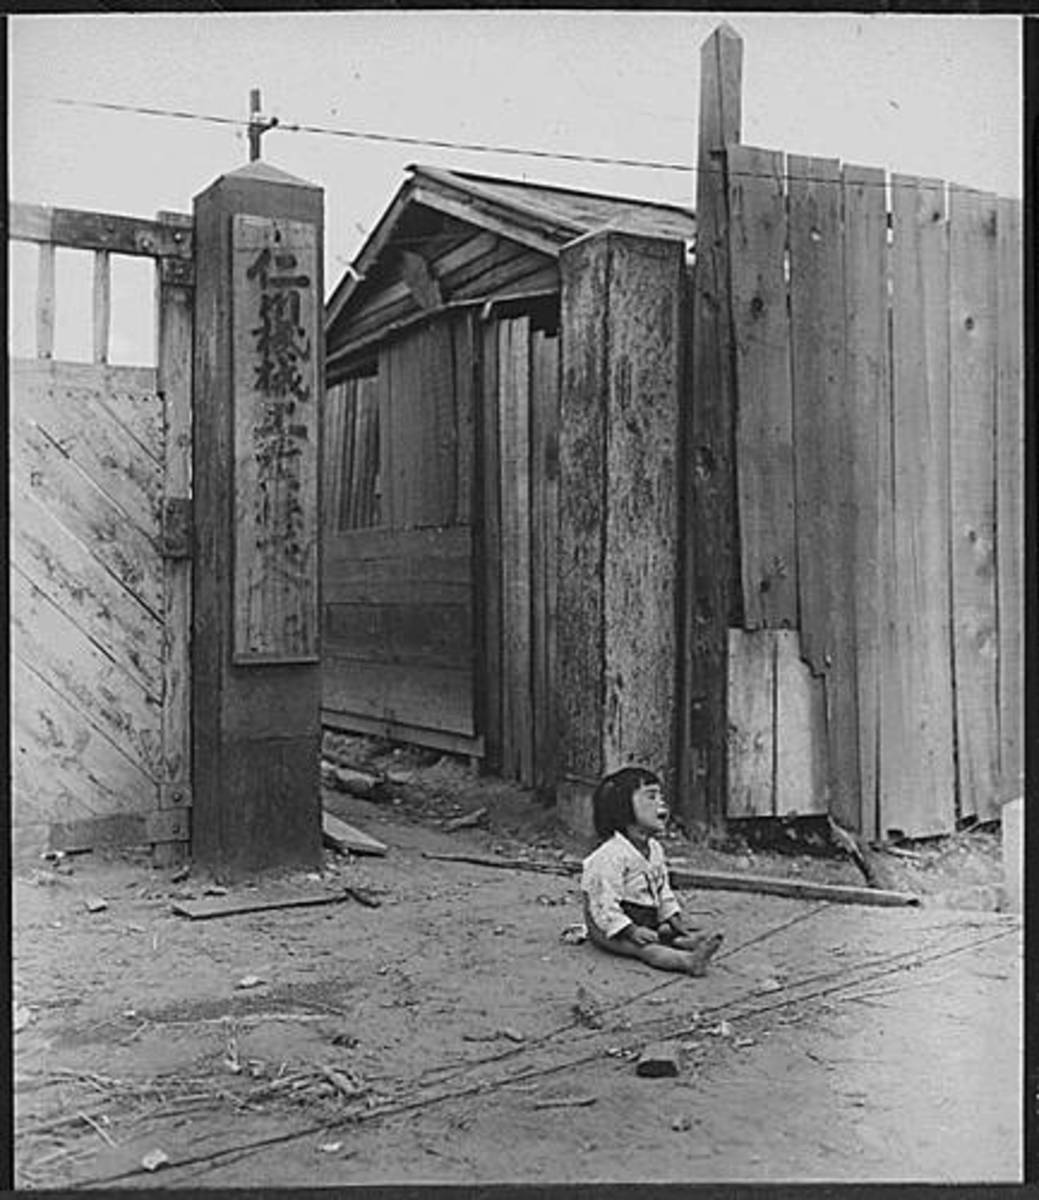 ONE RESULT OF SOCIALIST AGGRESSION IN THE KOREAN WAR